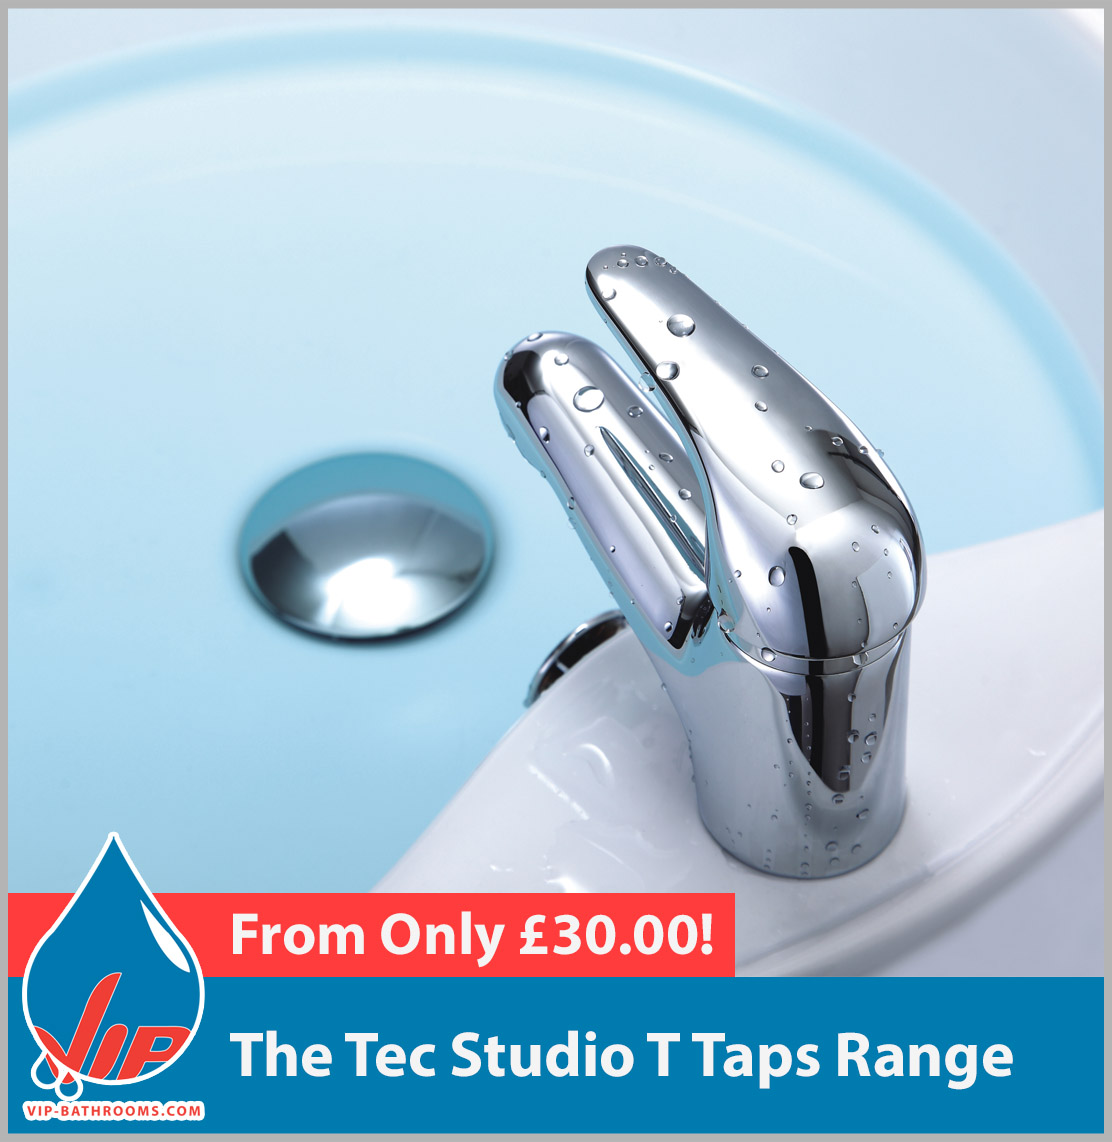 Click here to view the Tec Studio T range of high quality designer Bathroom Taps